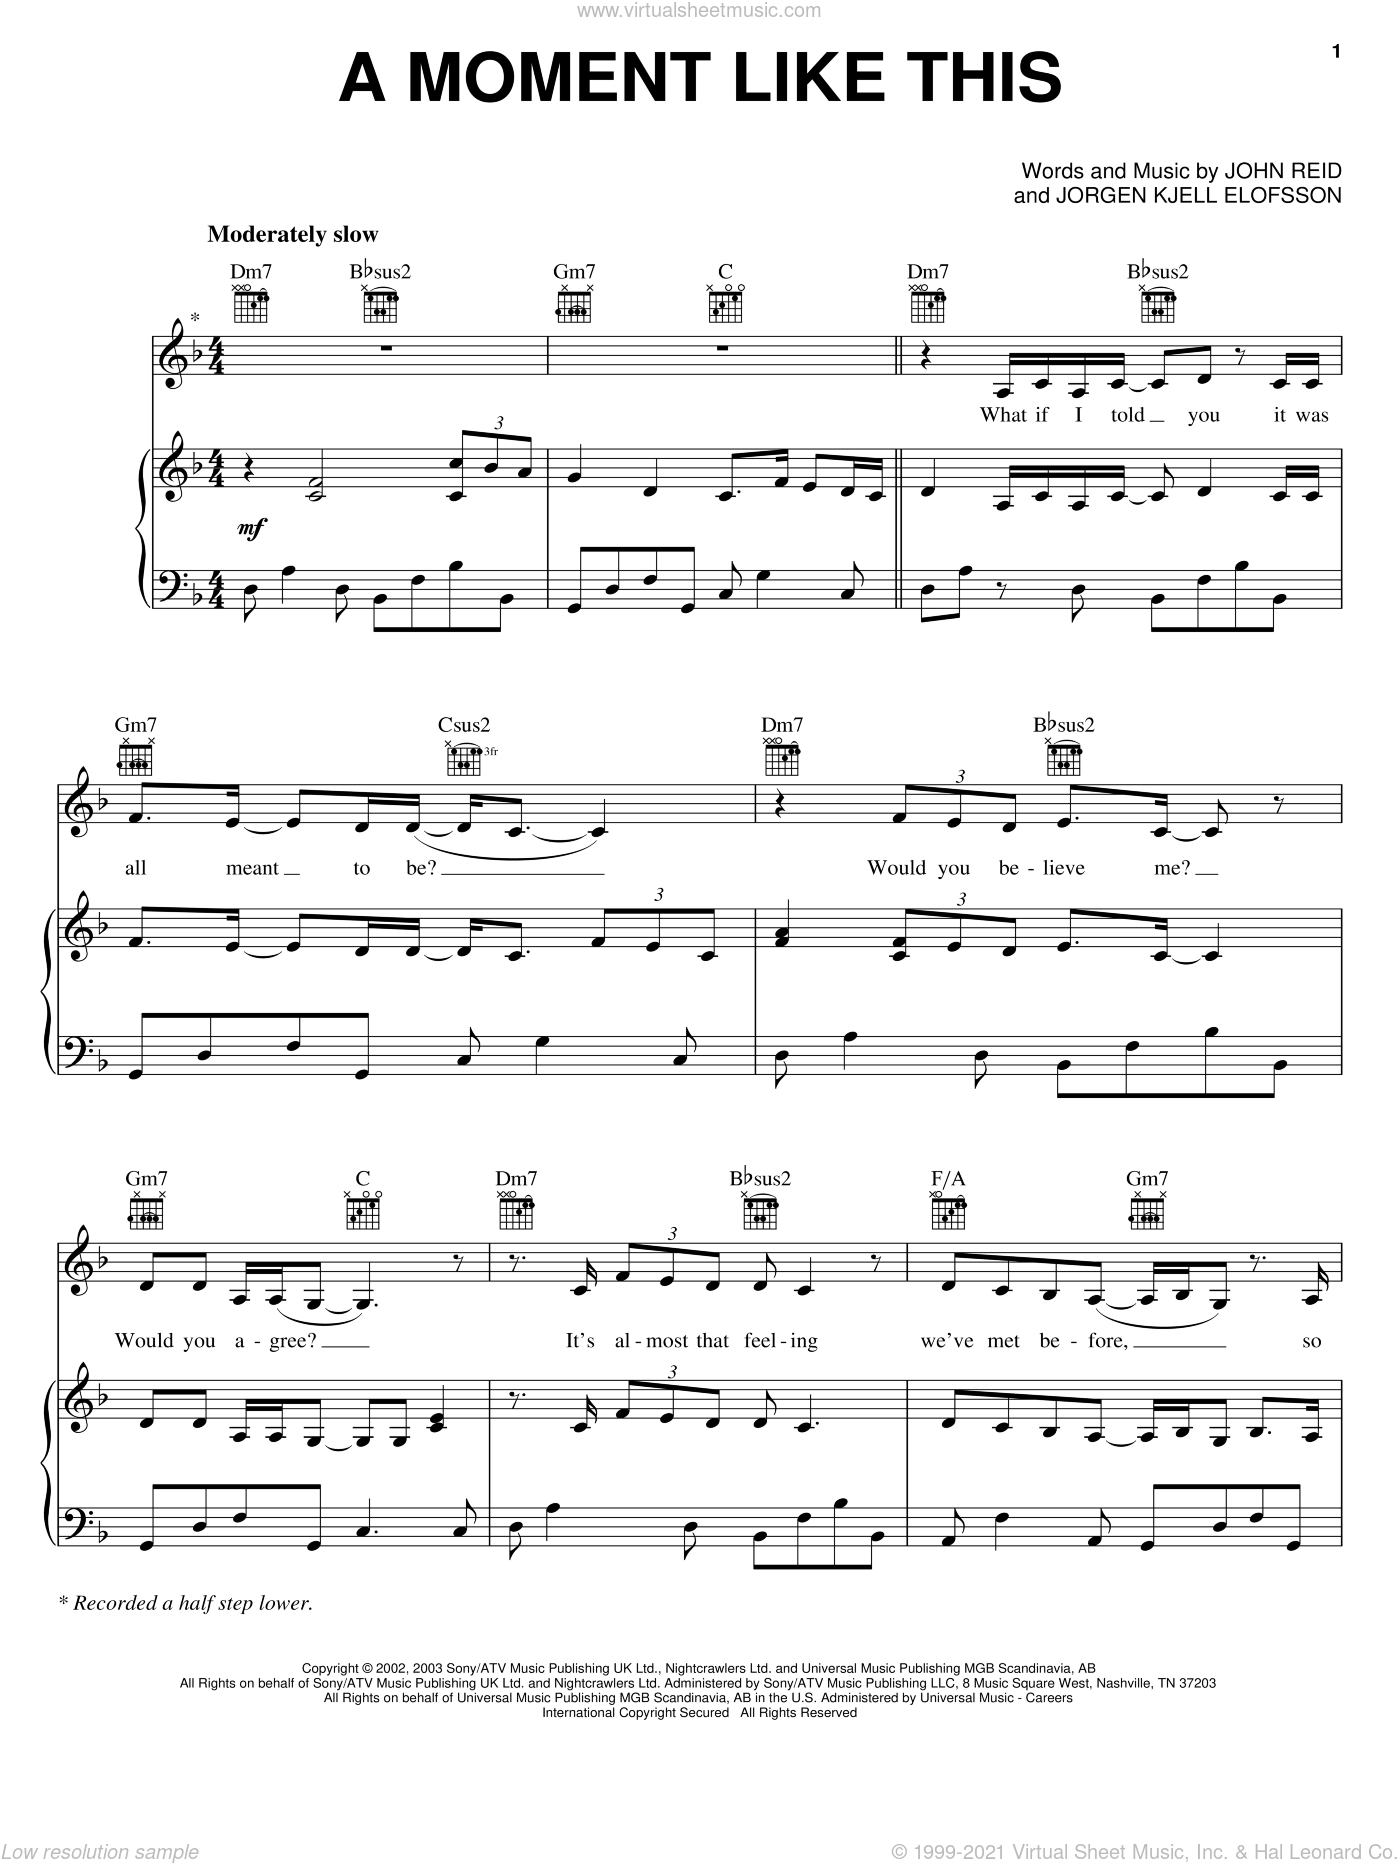 A Moment Like This sheet music for voice, piano or guitar by Jorgen Elofsson, Kelly Clarkson and John Reid